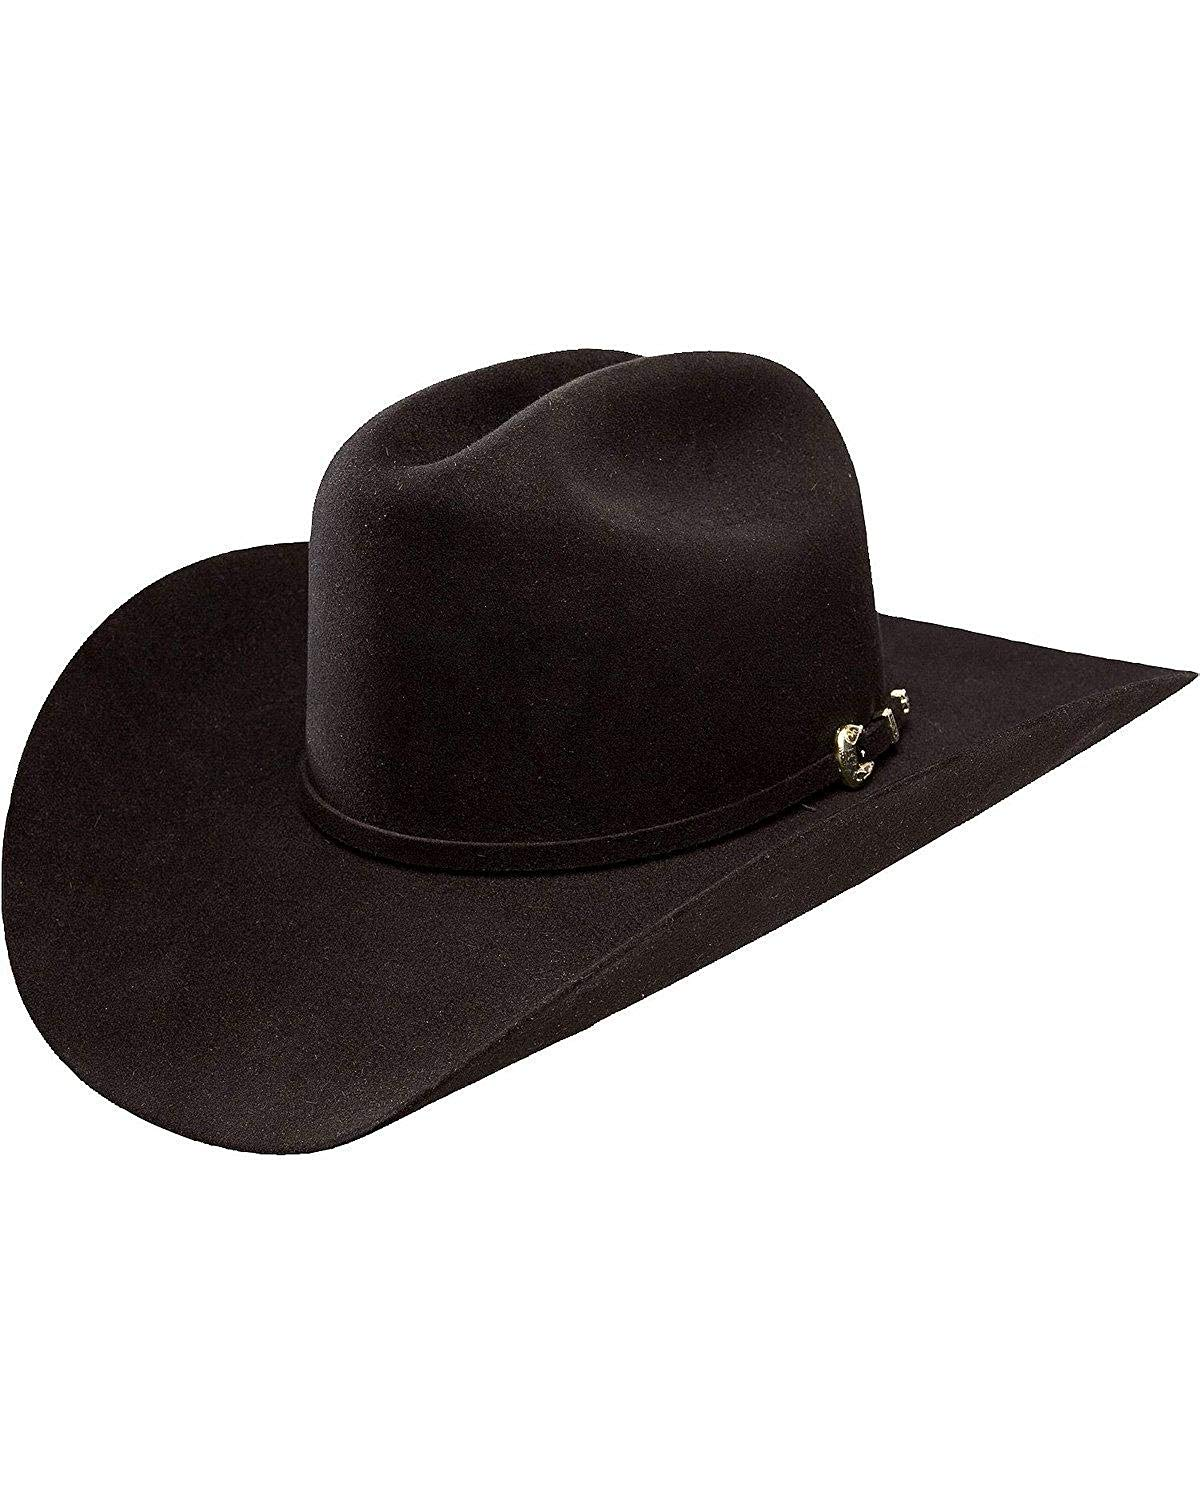 dbc47b7acf60e Get Quotations · Stetson Men s High Point 6X Fur Felt Cowboy Hat -  Sf06720740.Hipt-R